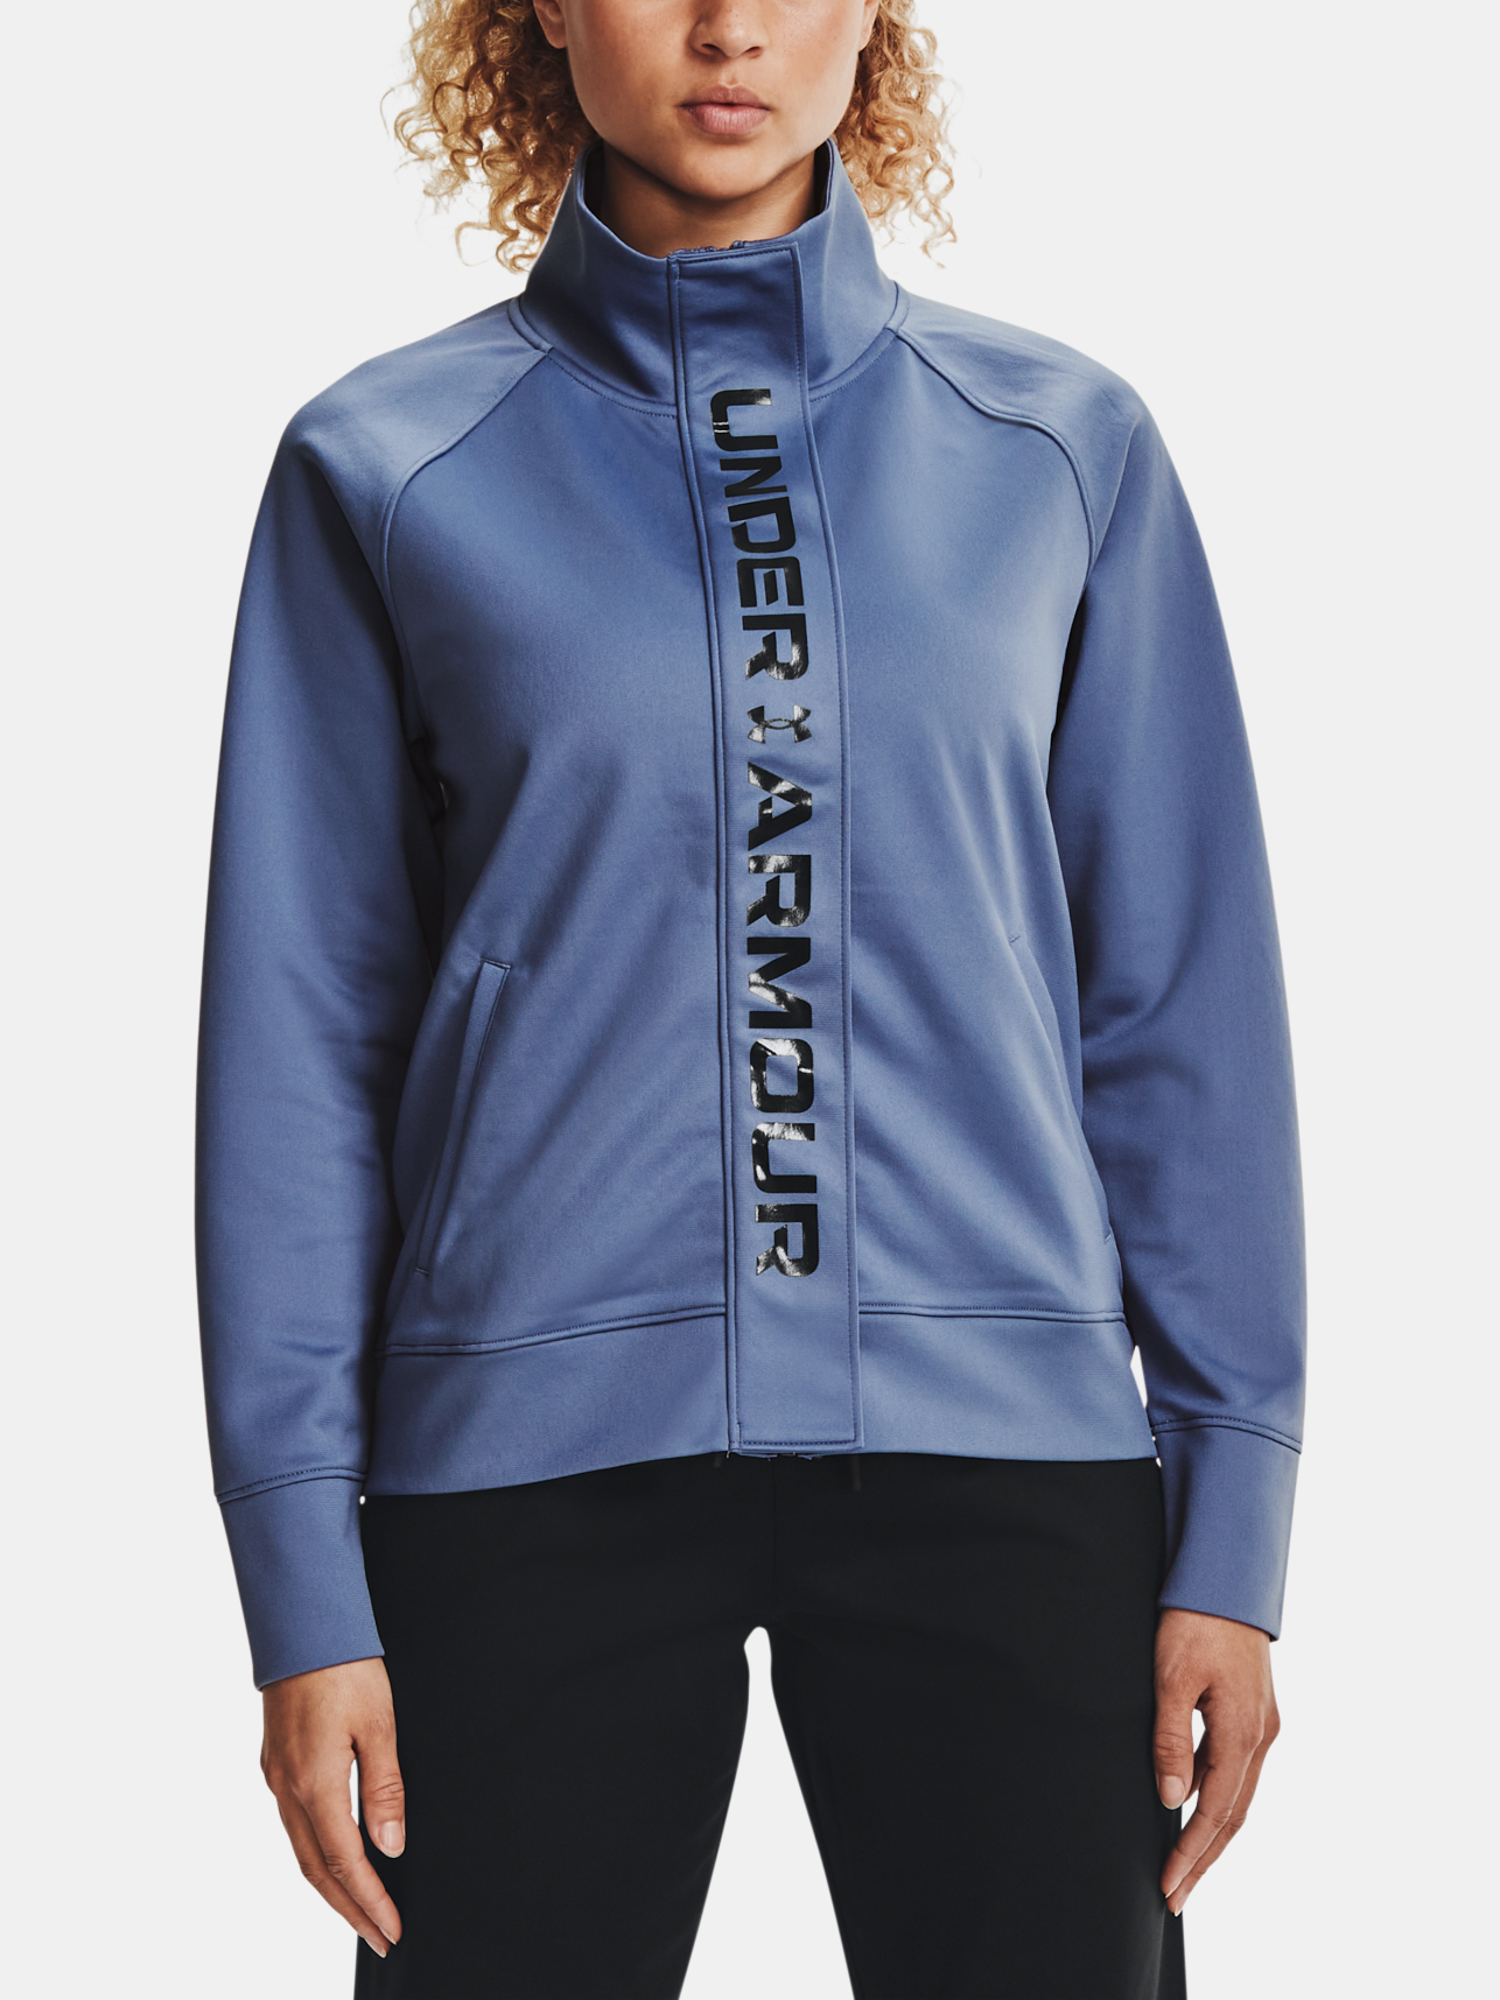 Under Armour Recover Tricot Mikina Modrá - M